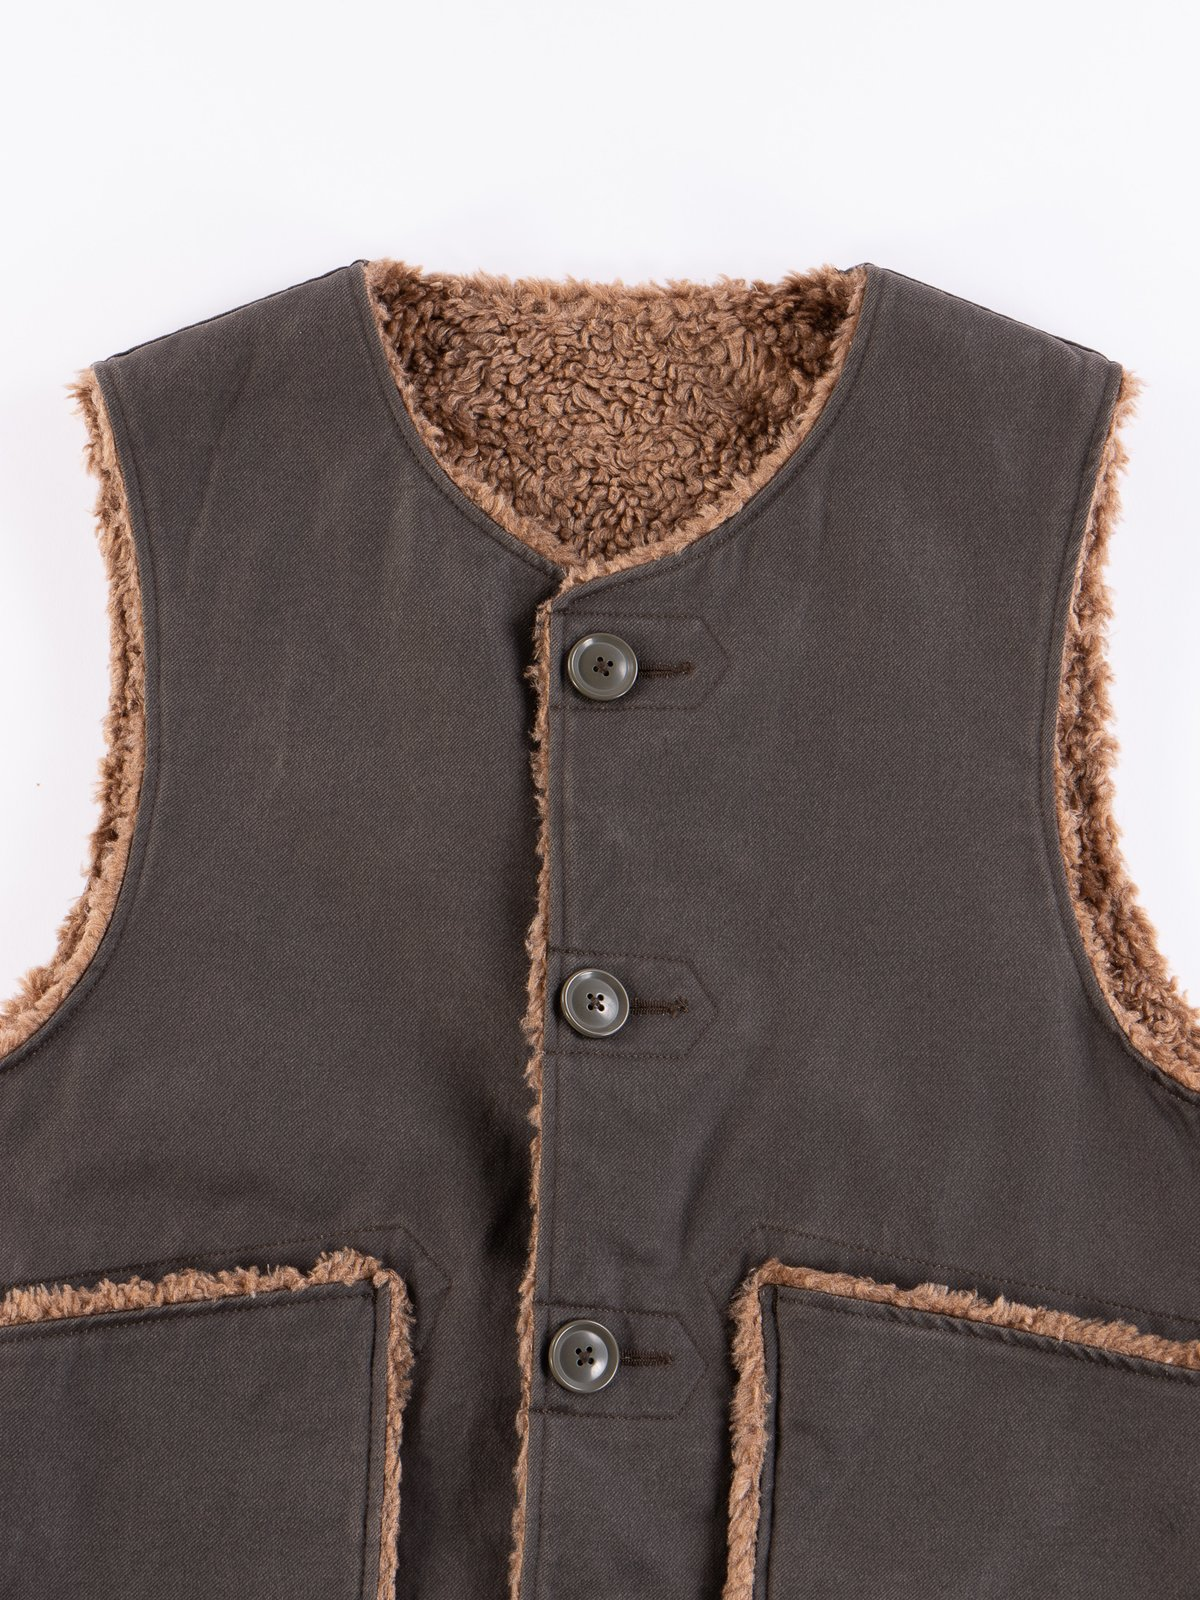 Dark Olive Coated Twill Over Vest - Image 3